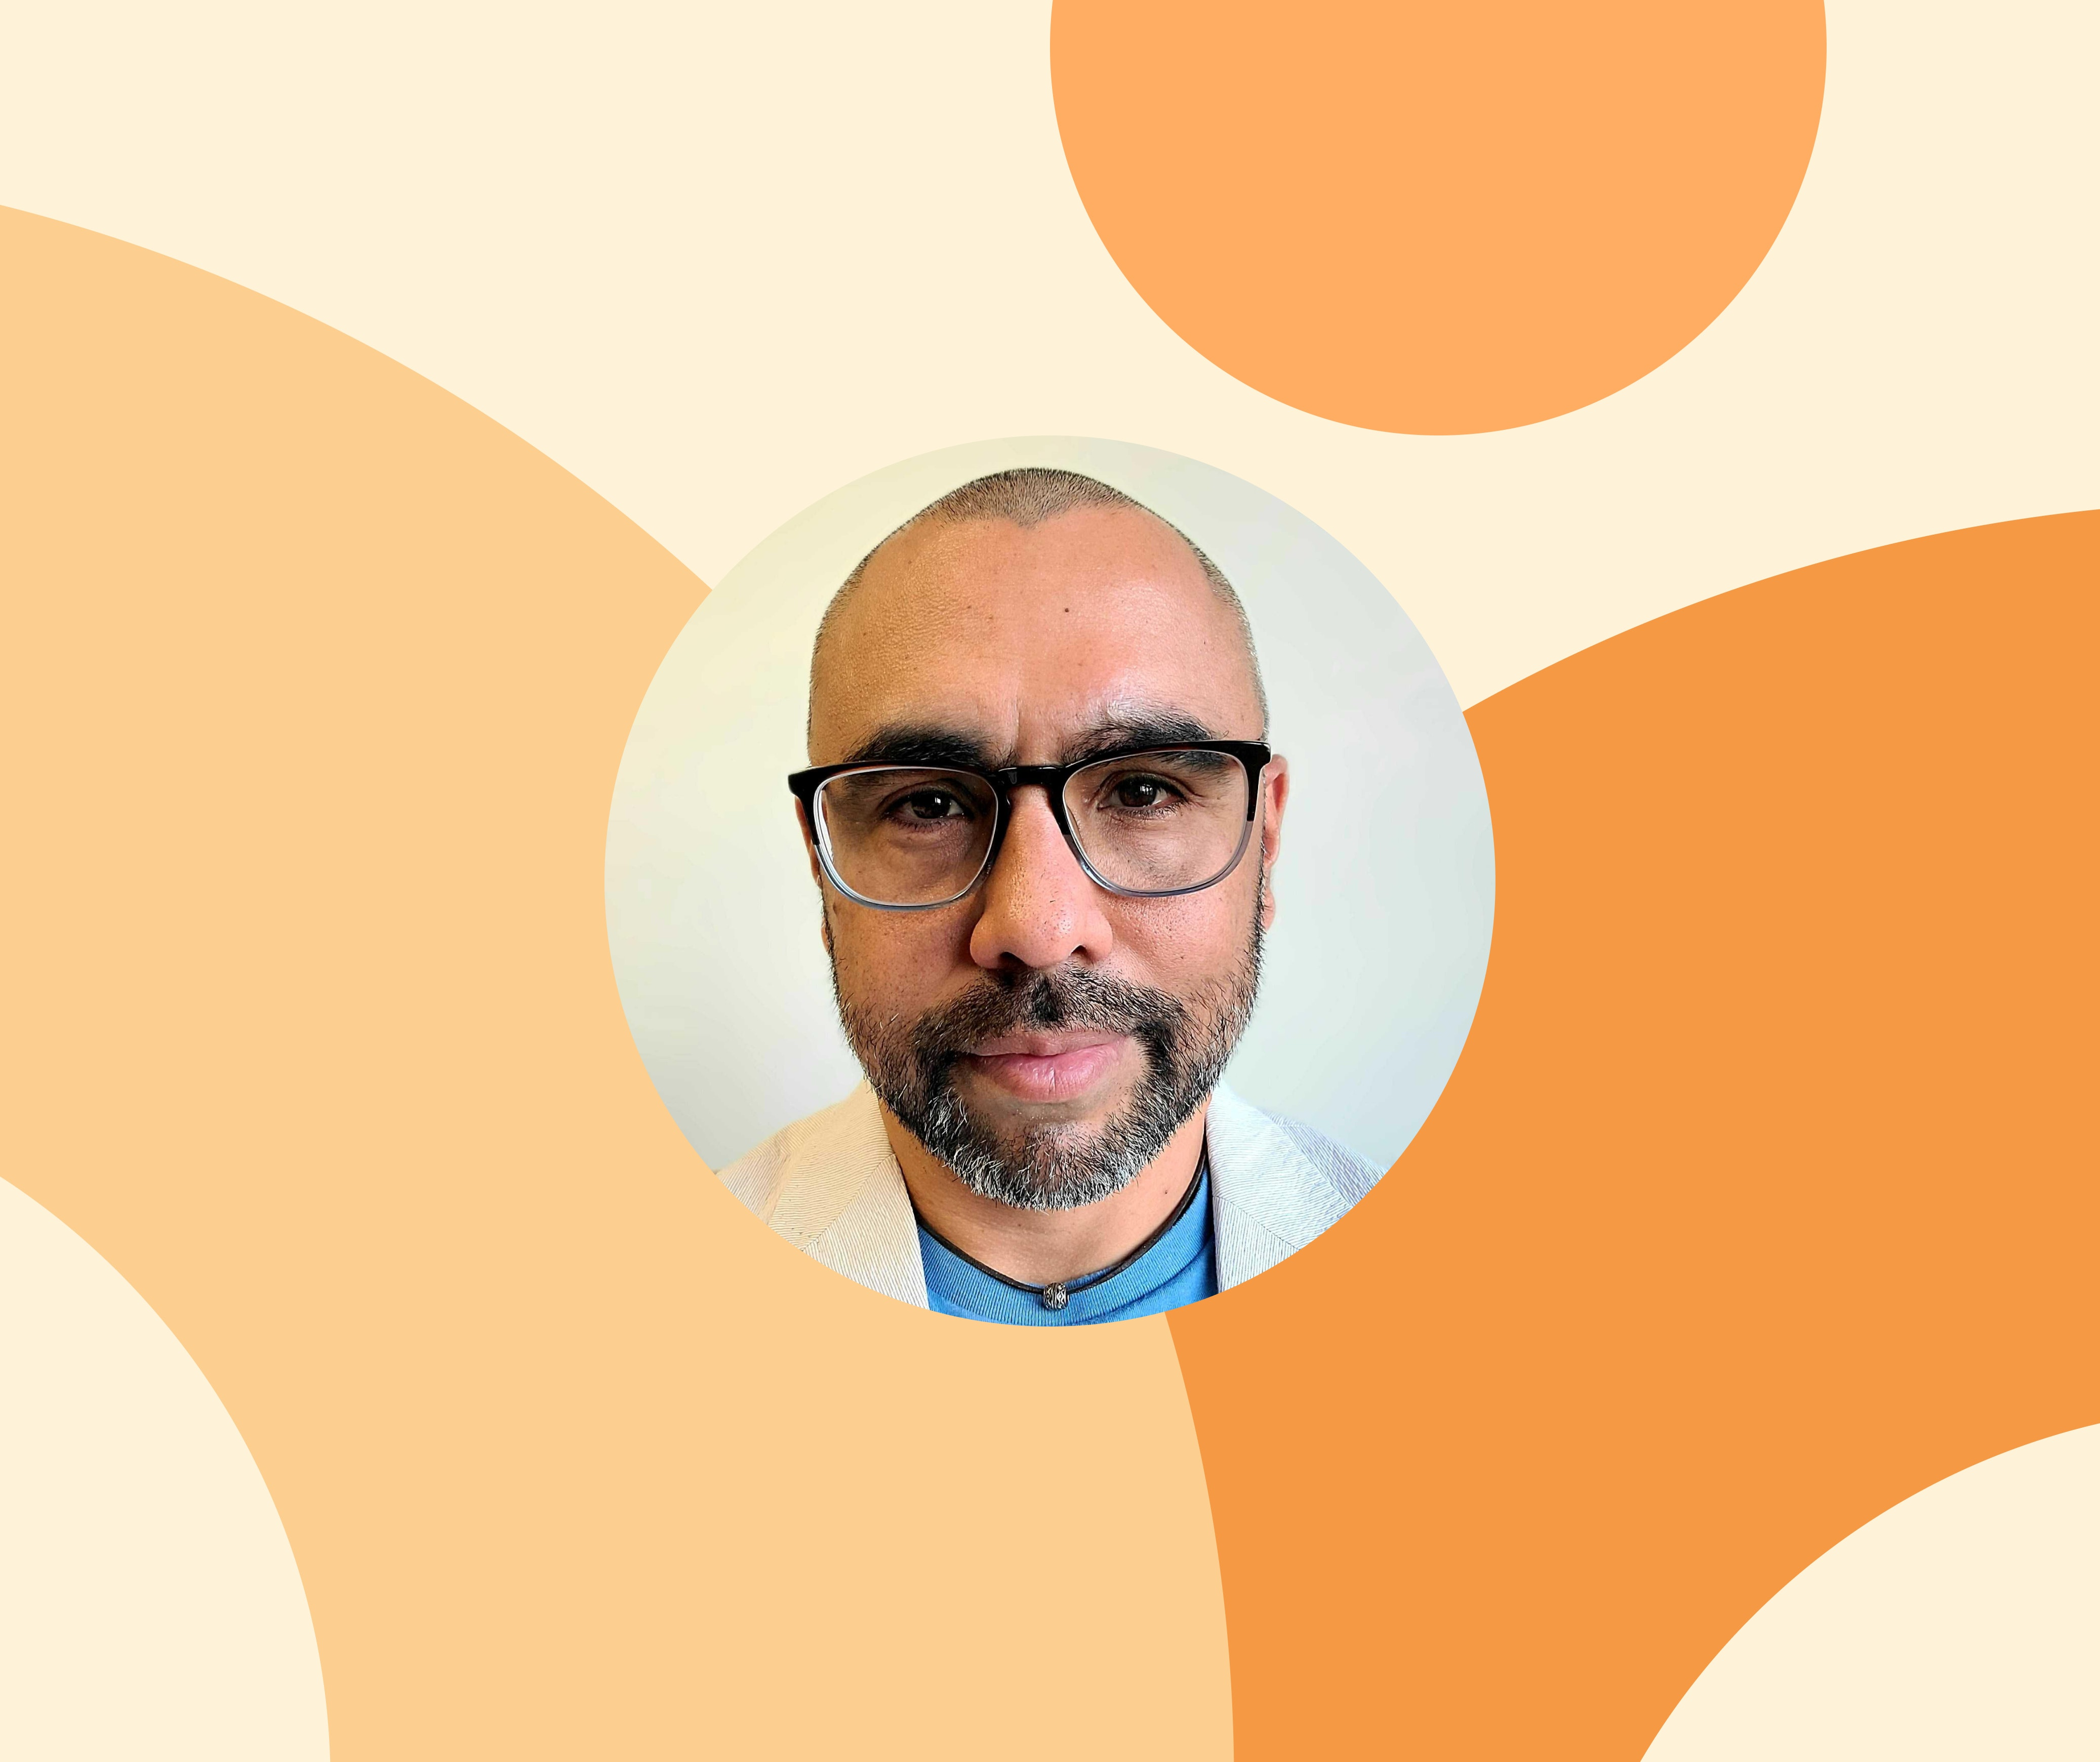 Making a difference: Building meaningful customer relationships with Paul Campillo